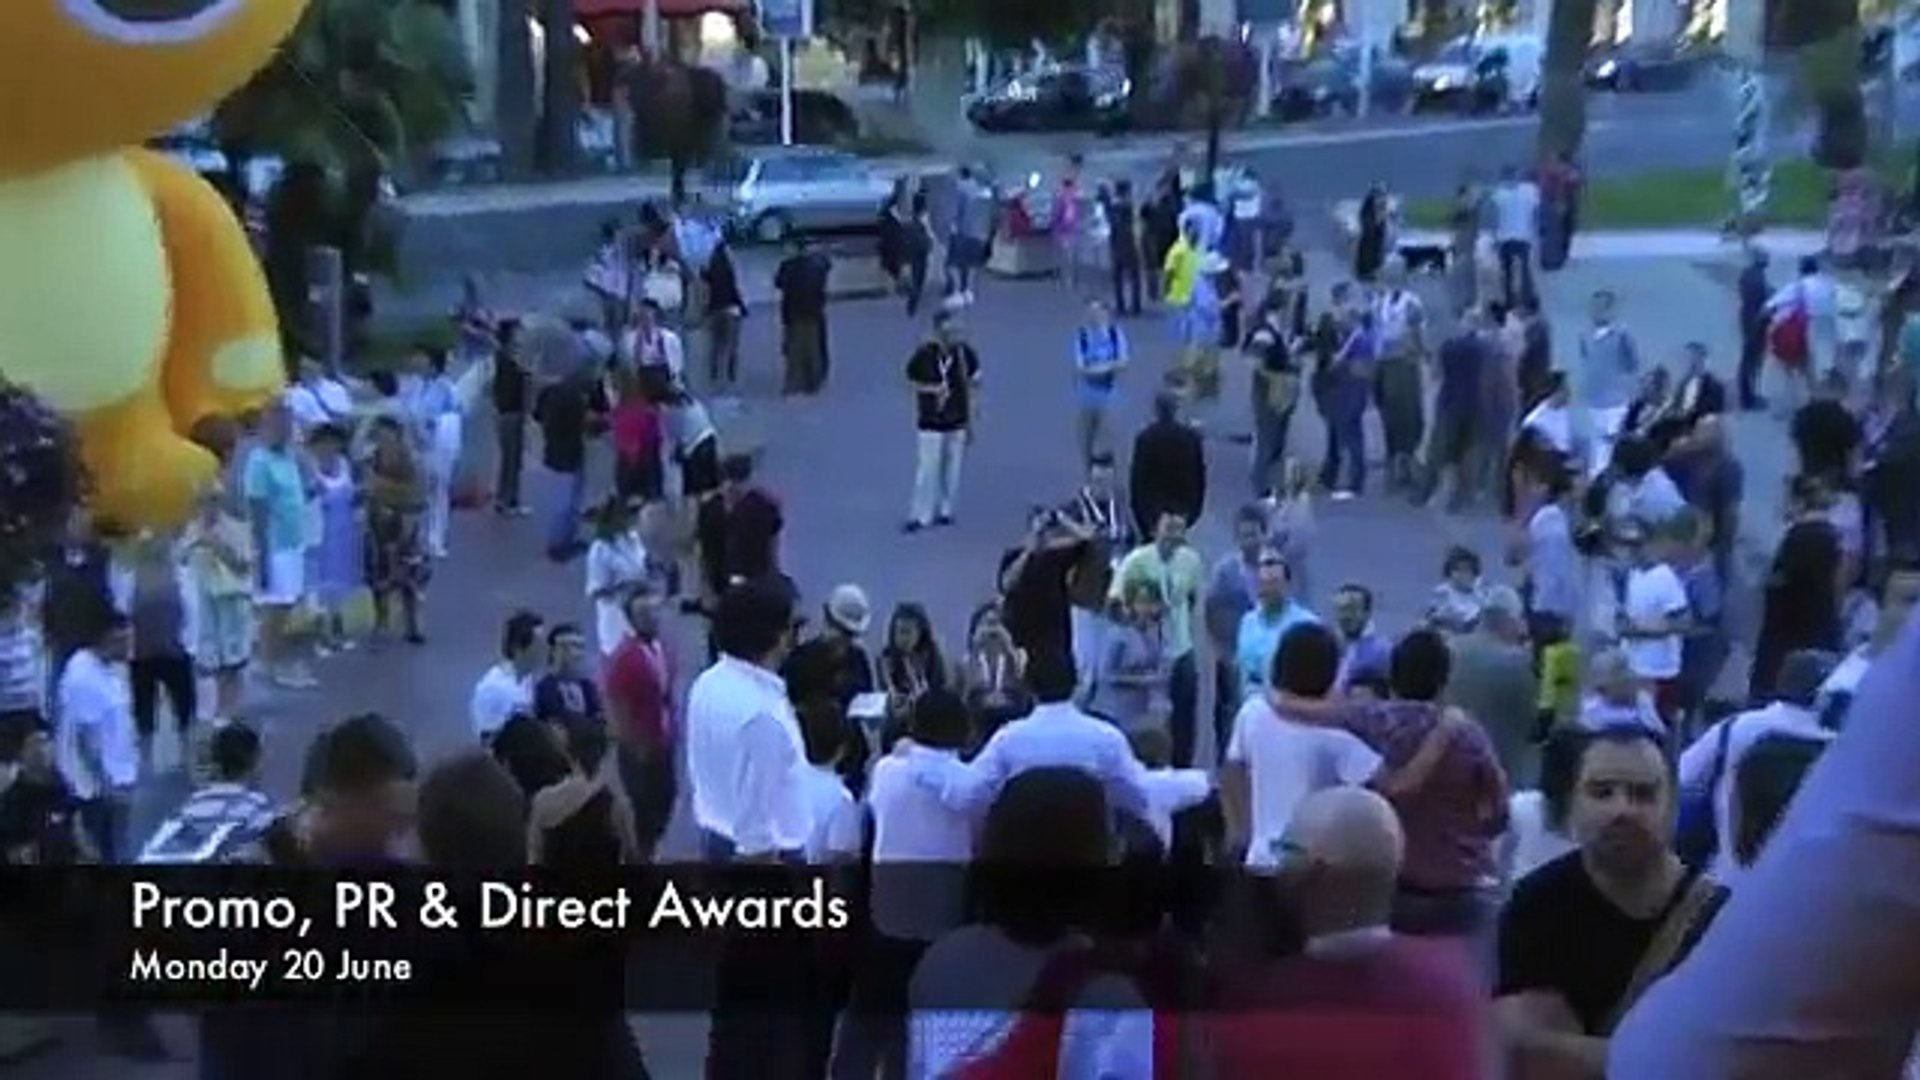 Победители 2011 года:Promo, PR & Direct Awards. Monday 22 June